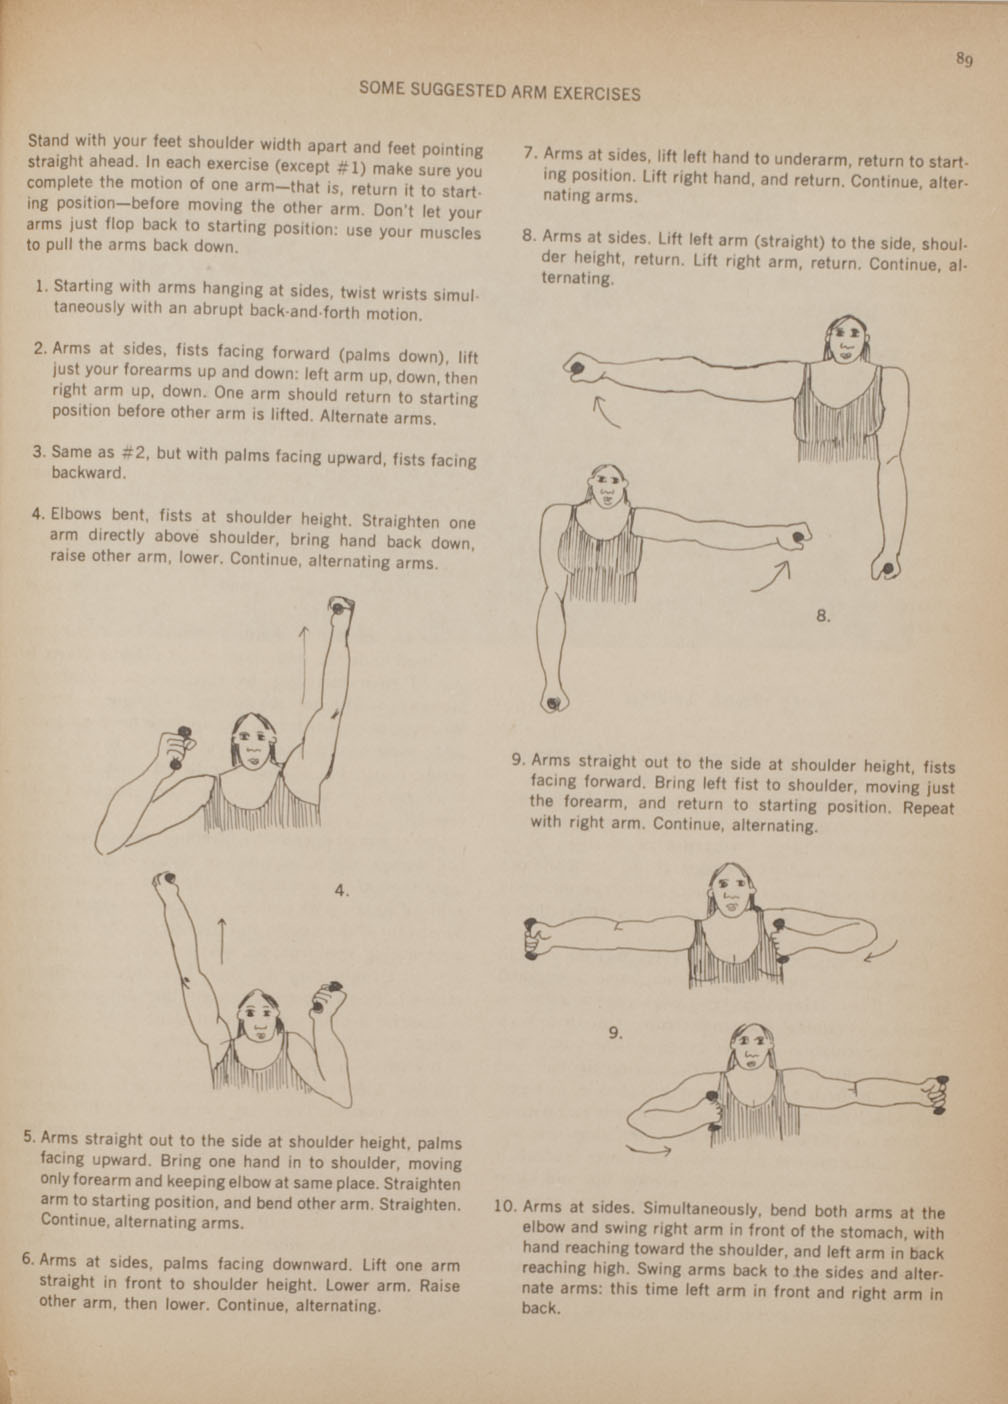 Suggested arm exercises